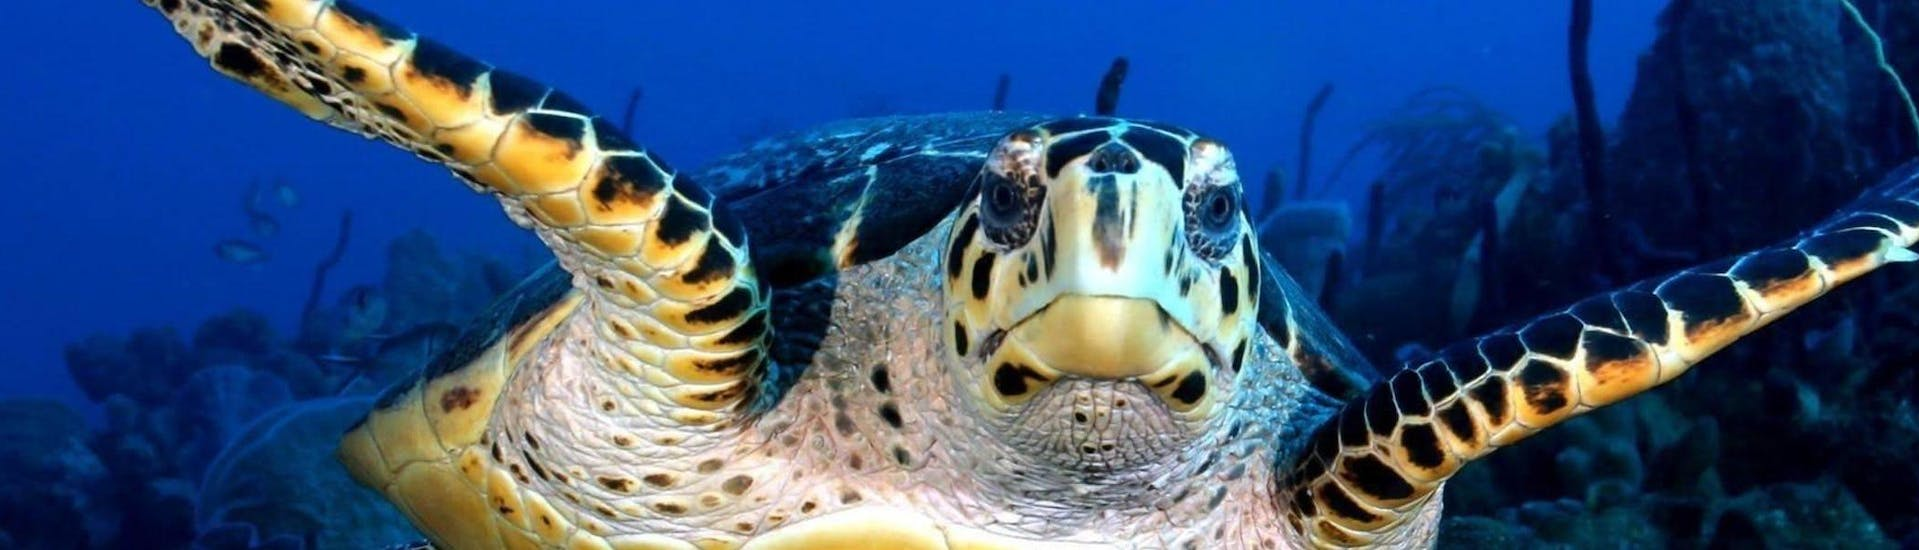 A turtle is pictured during Snorkeling in Réserve Cousteau with Les Heures Saines Guadeloupe.